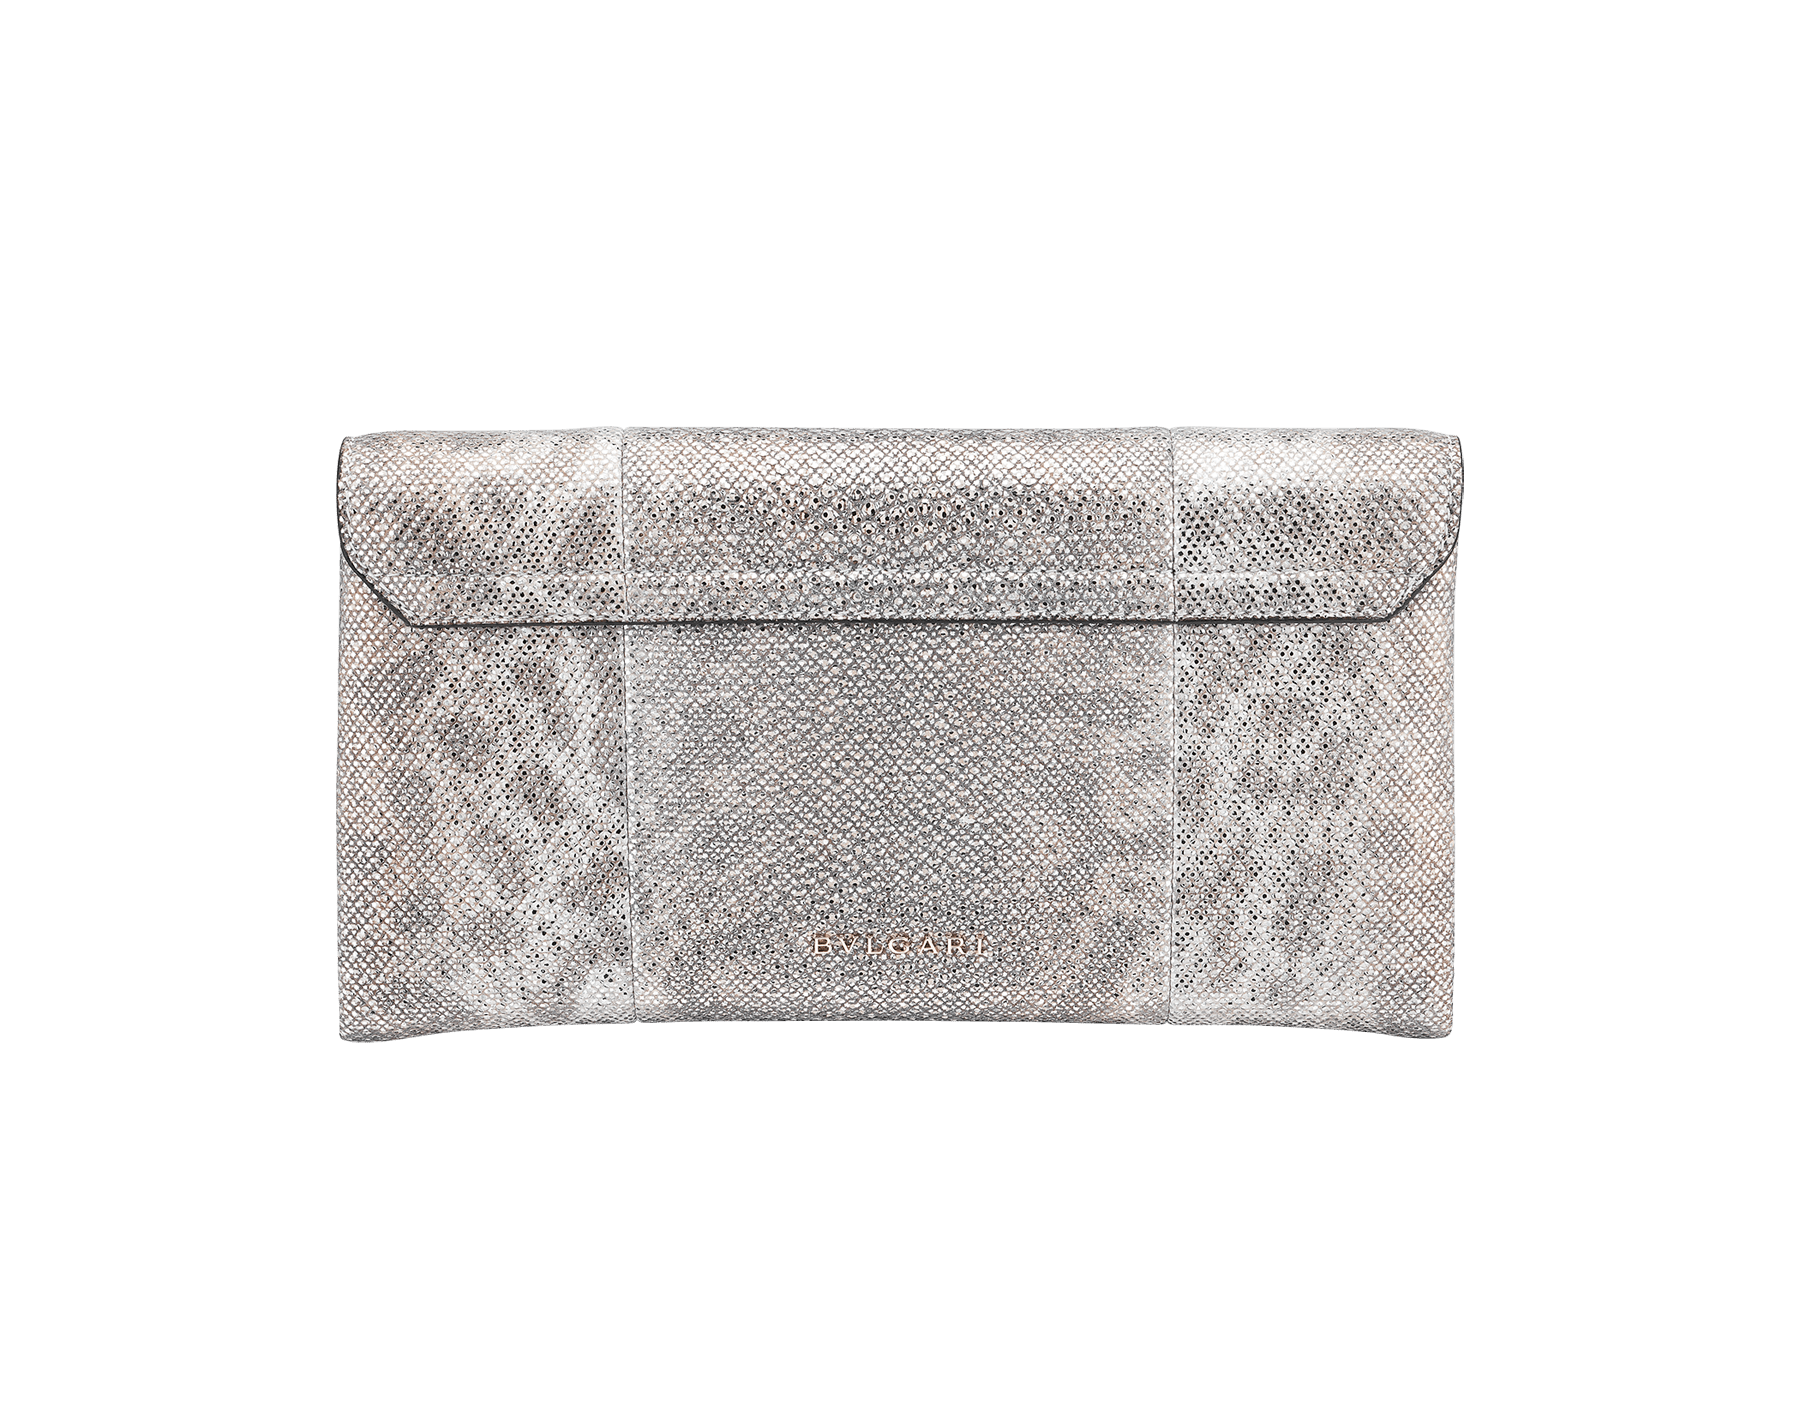 """Serpenti"" evening clutch bag in white agate metallic karung skin. Iconic snakehead stud closure with tassel in light gold plated brass enriched with shiny black and white agate enamel and black onyx eyes. 289004 image 3"